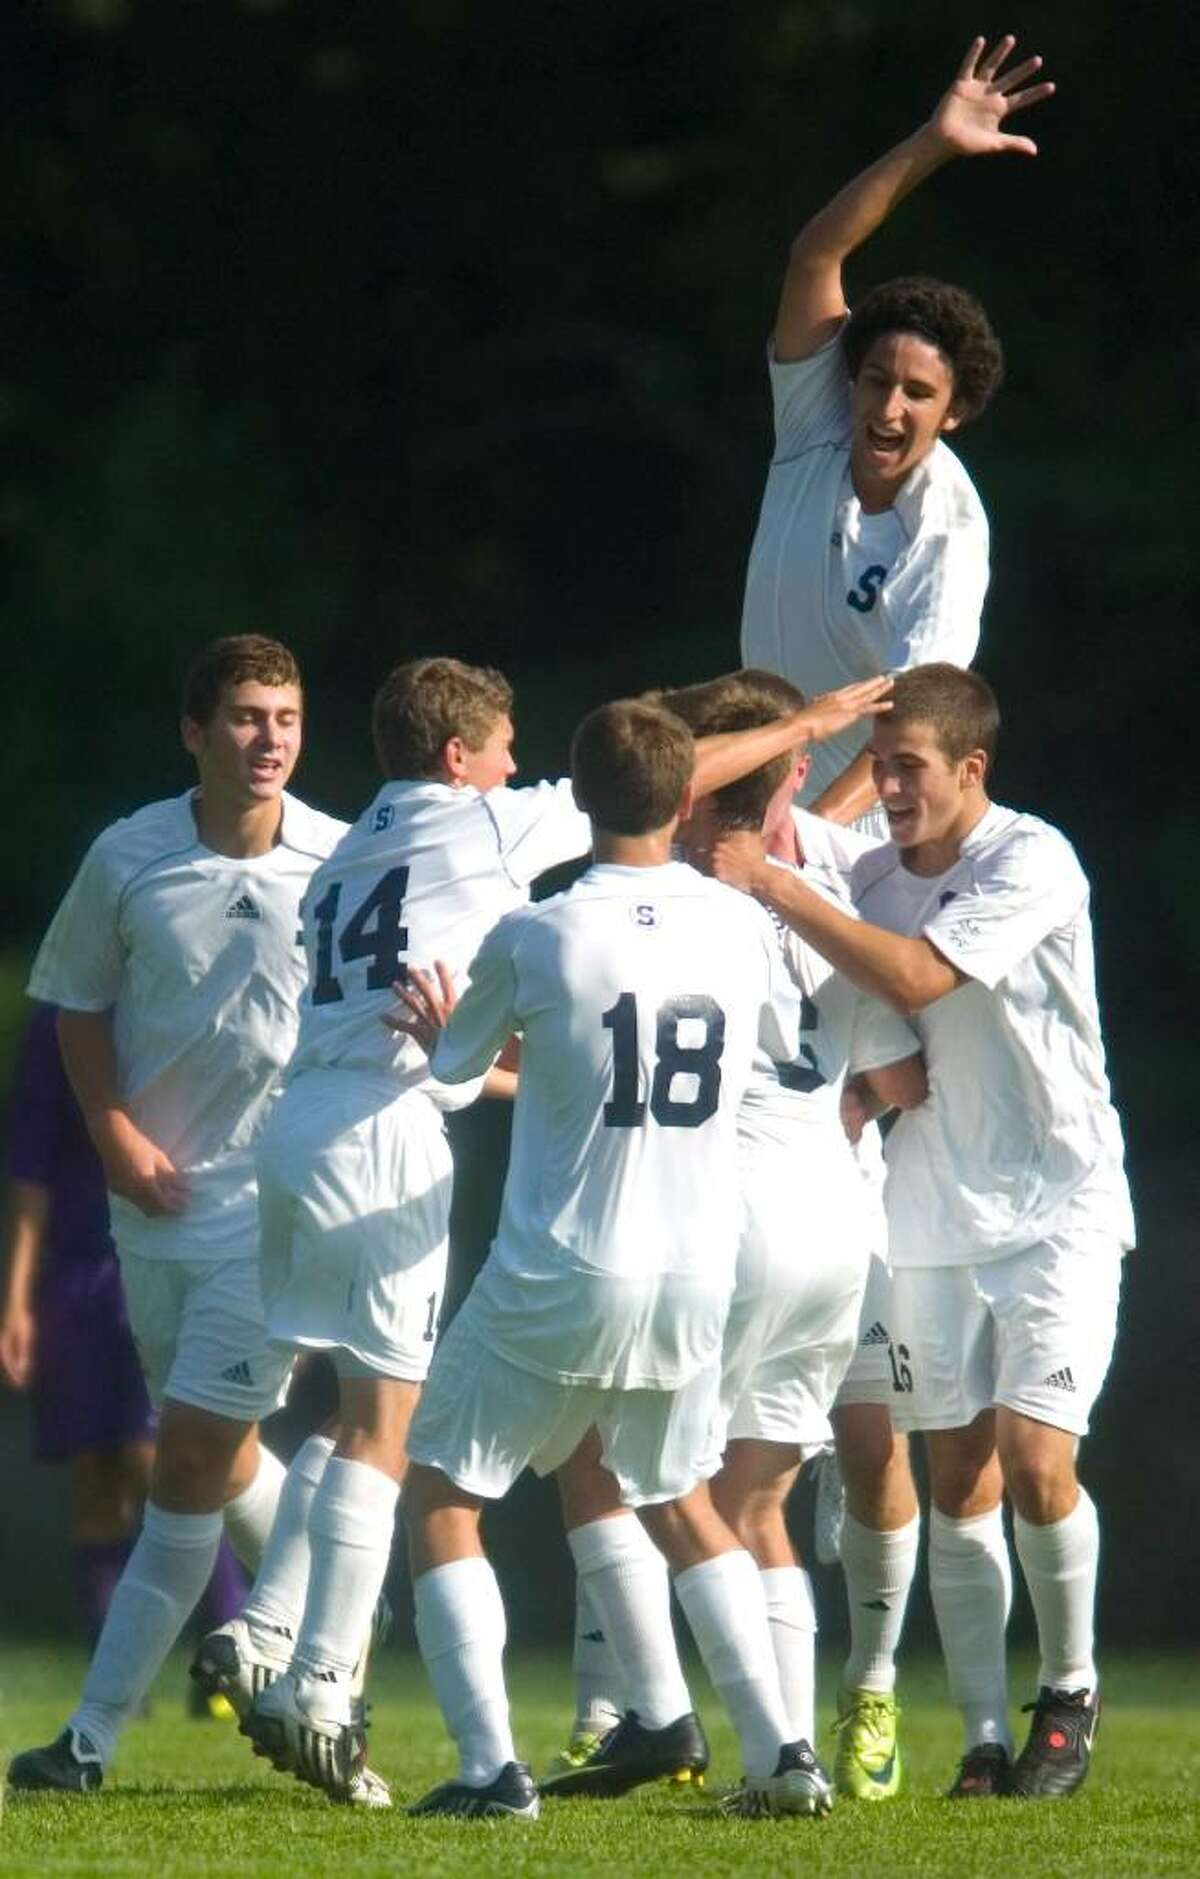 Staples High School players, including Jack Hennessy, top, celebrate after a goal in the first half of an FCIAC soccer match versus Westhill High School at Staples High School in Westport, Conn. on Tuesday, Sept. 15, 2009.